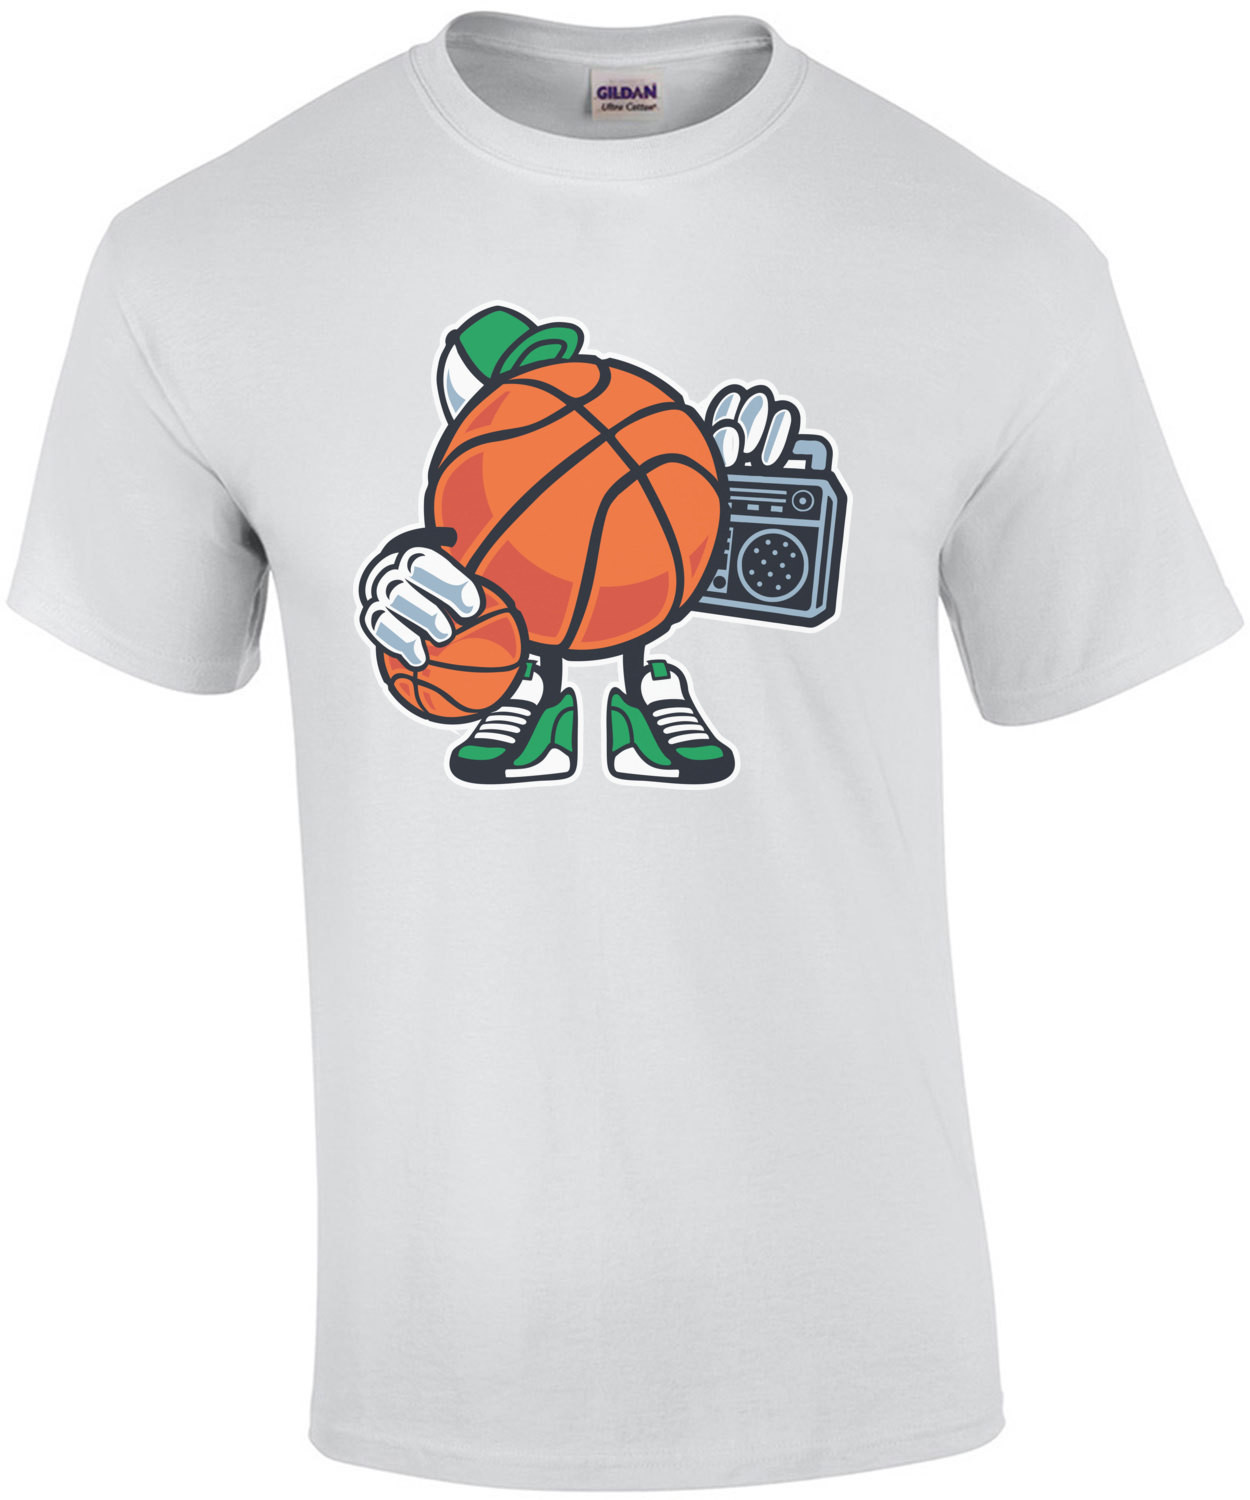 Retro Gangsta Basketball With Boombox T-Shirt